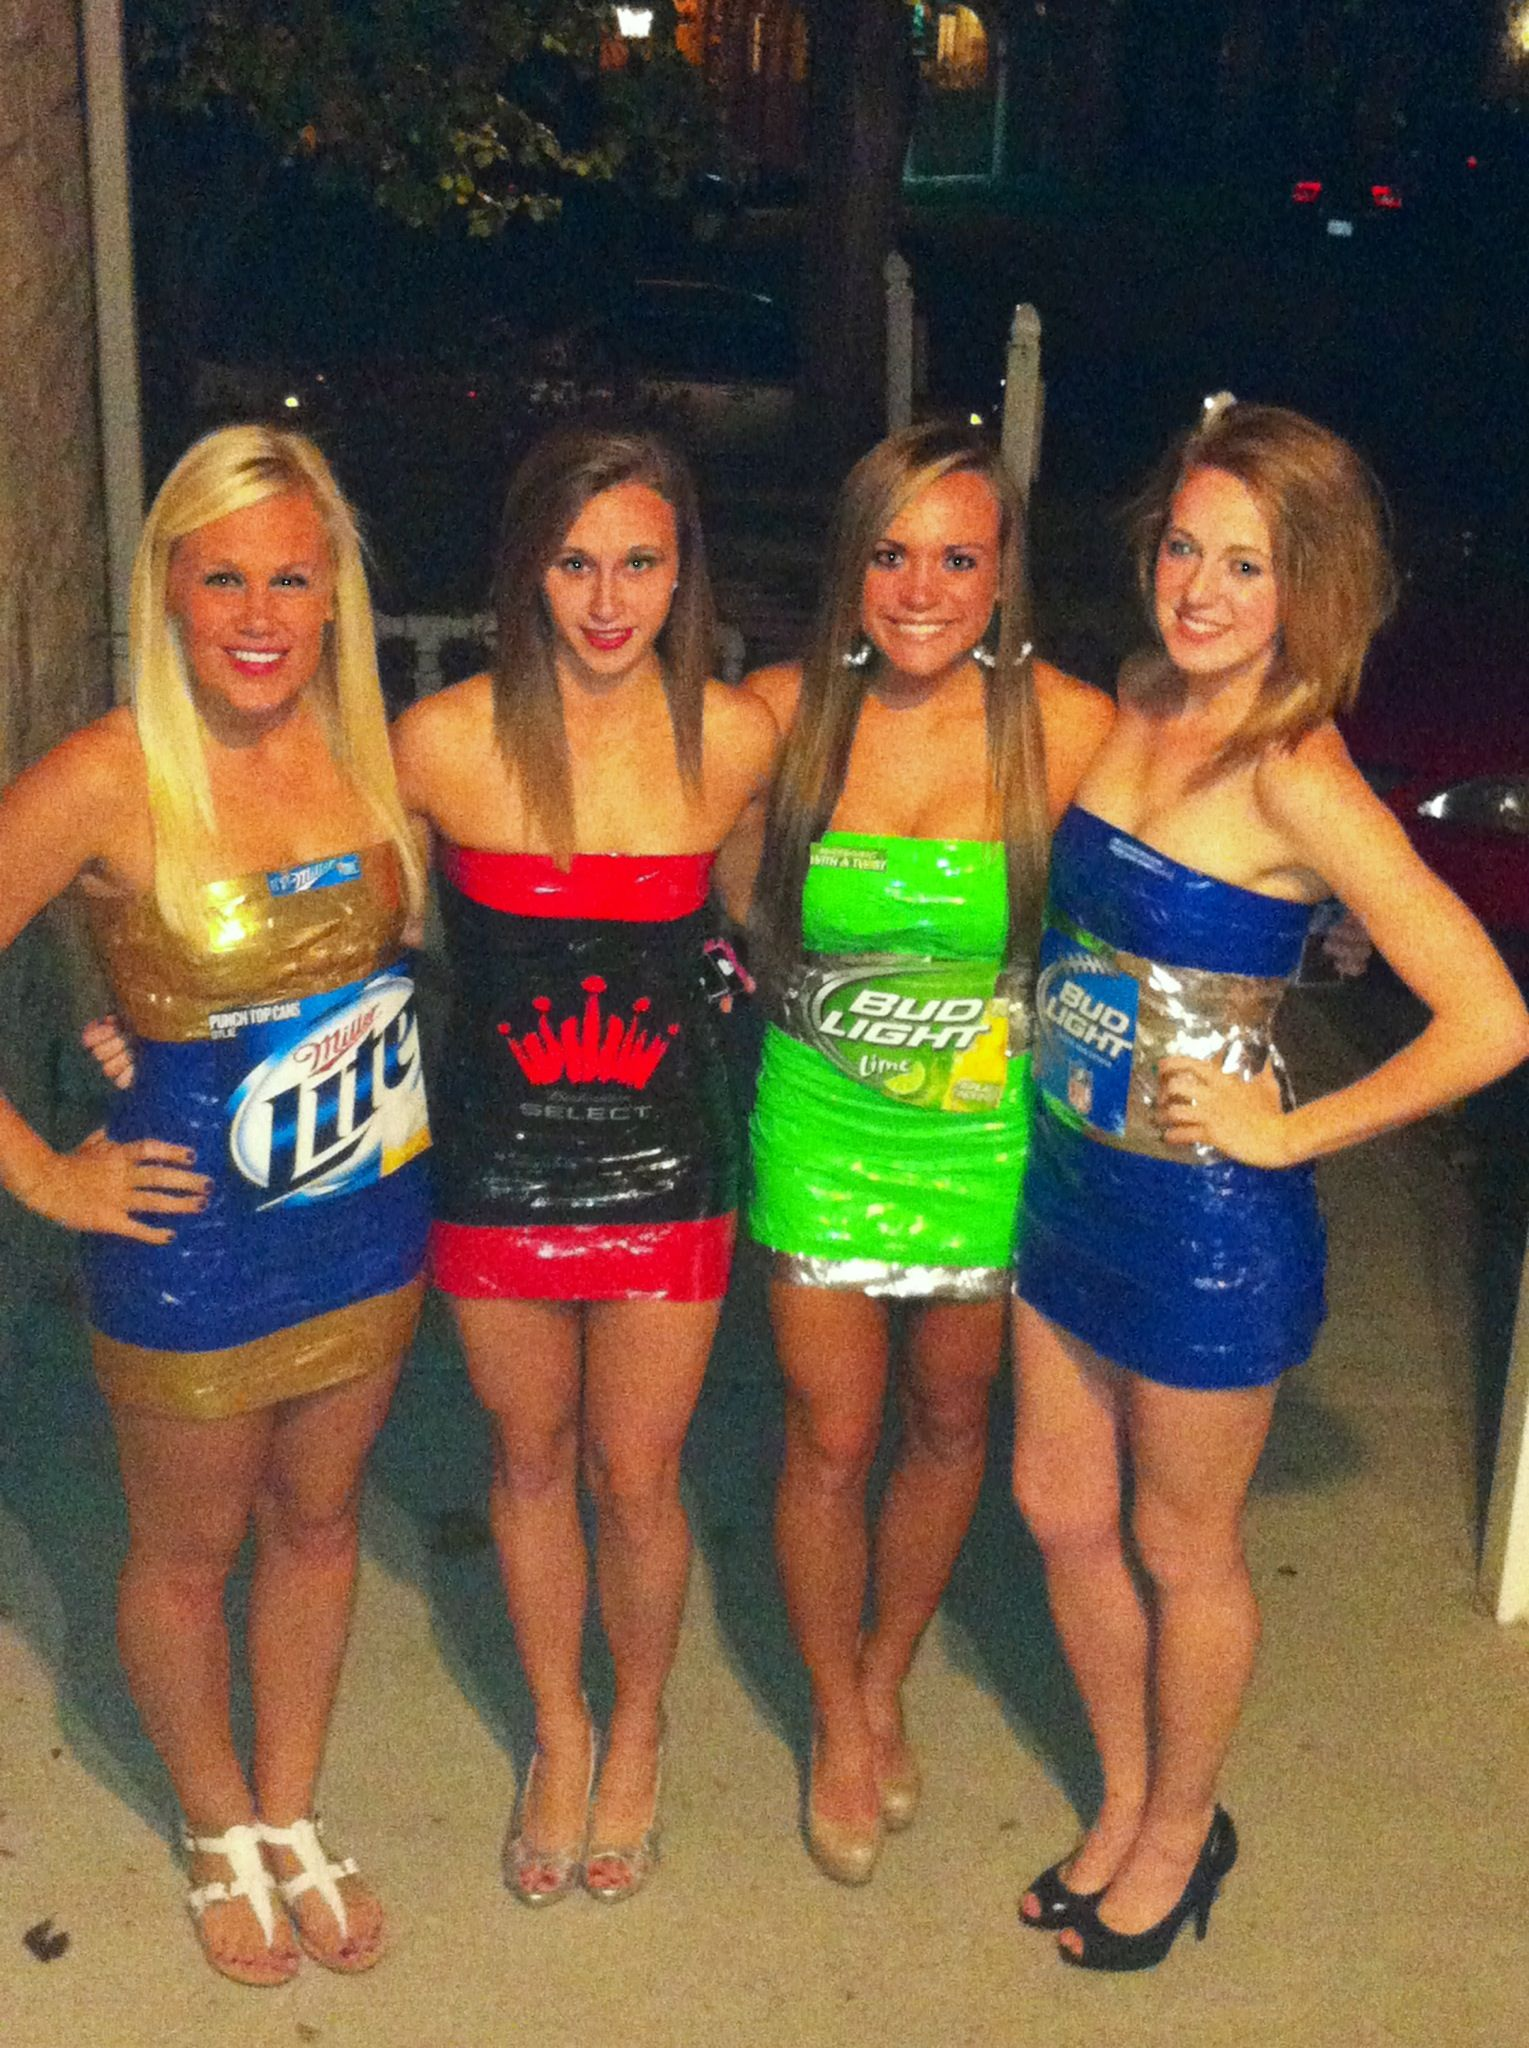 Perfect College Halloween Costume! Beer! Miller Light, Bud Select, Bud  Light Lime, And Bud Light!